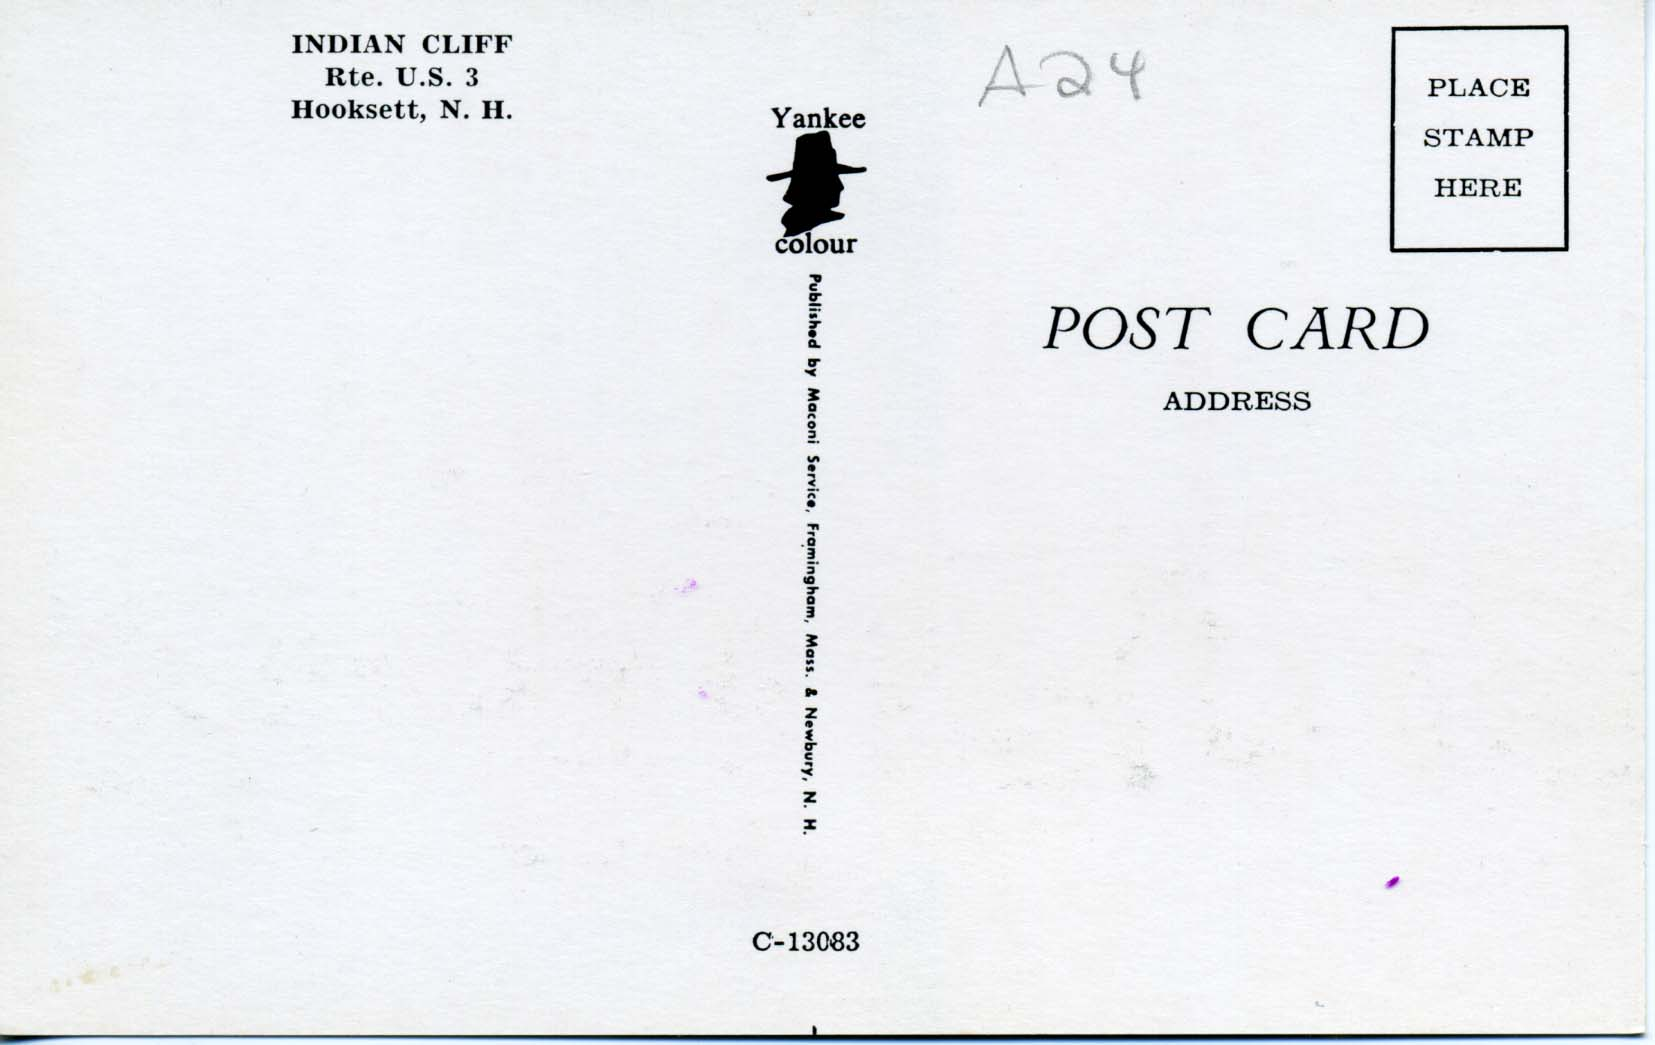 Standard size of a postcard